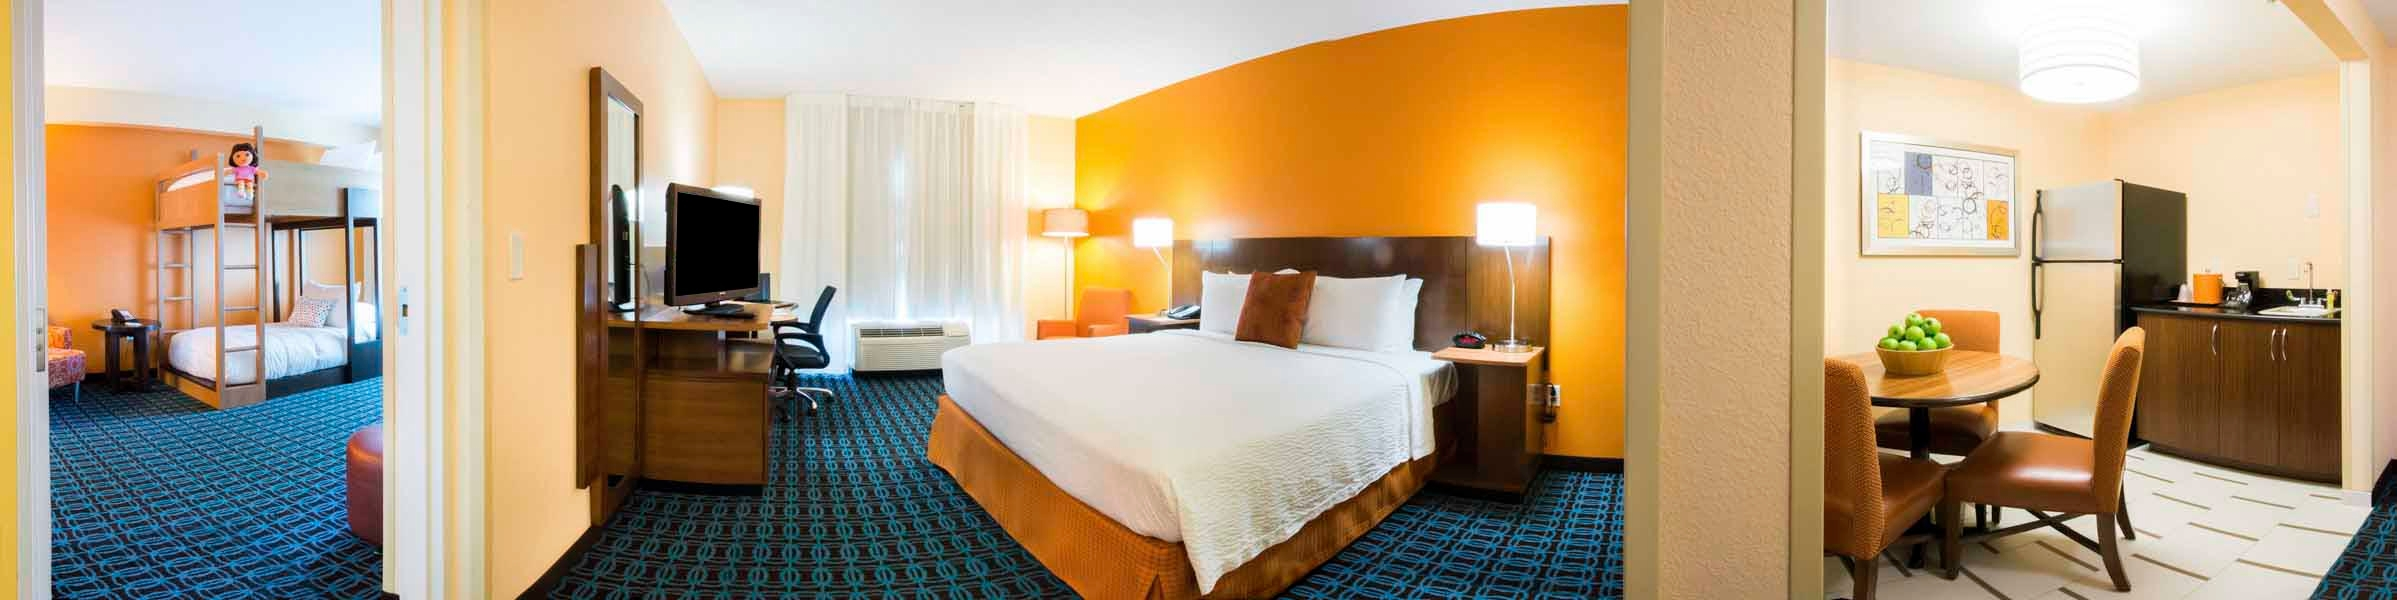 Fairfield Inn & Suites by Marriott Orlando International Drive/Convention Center image 4